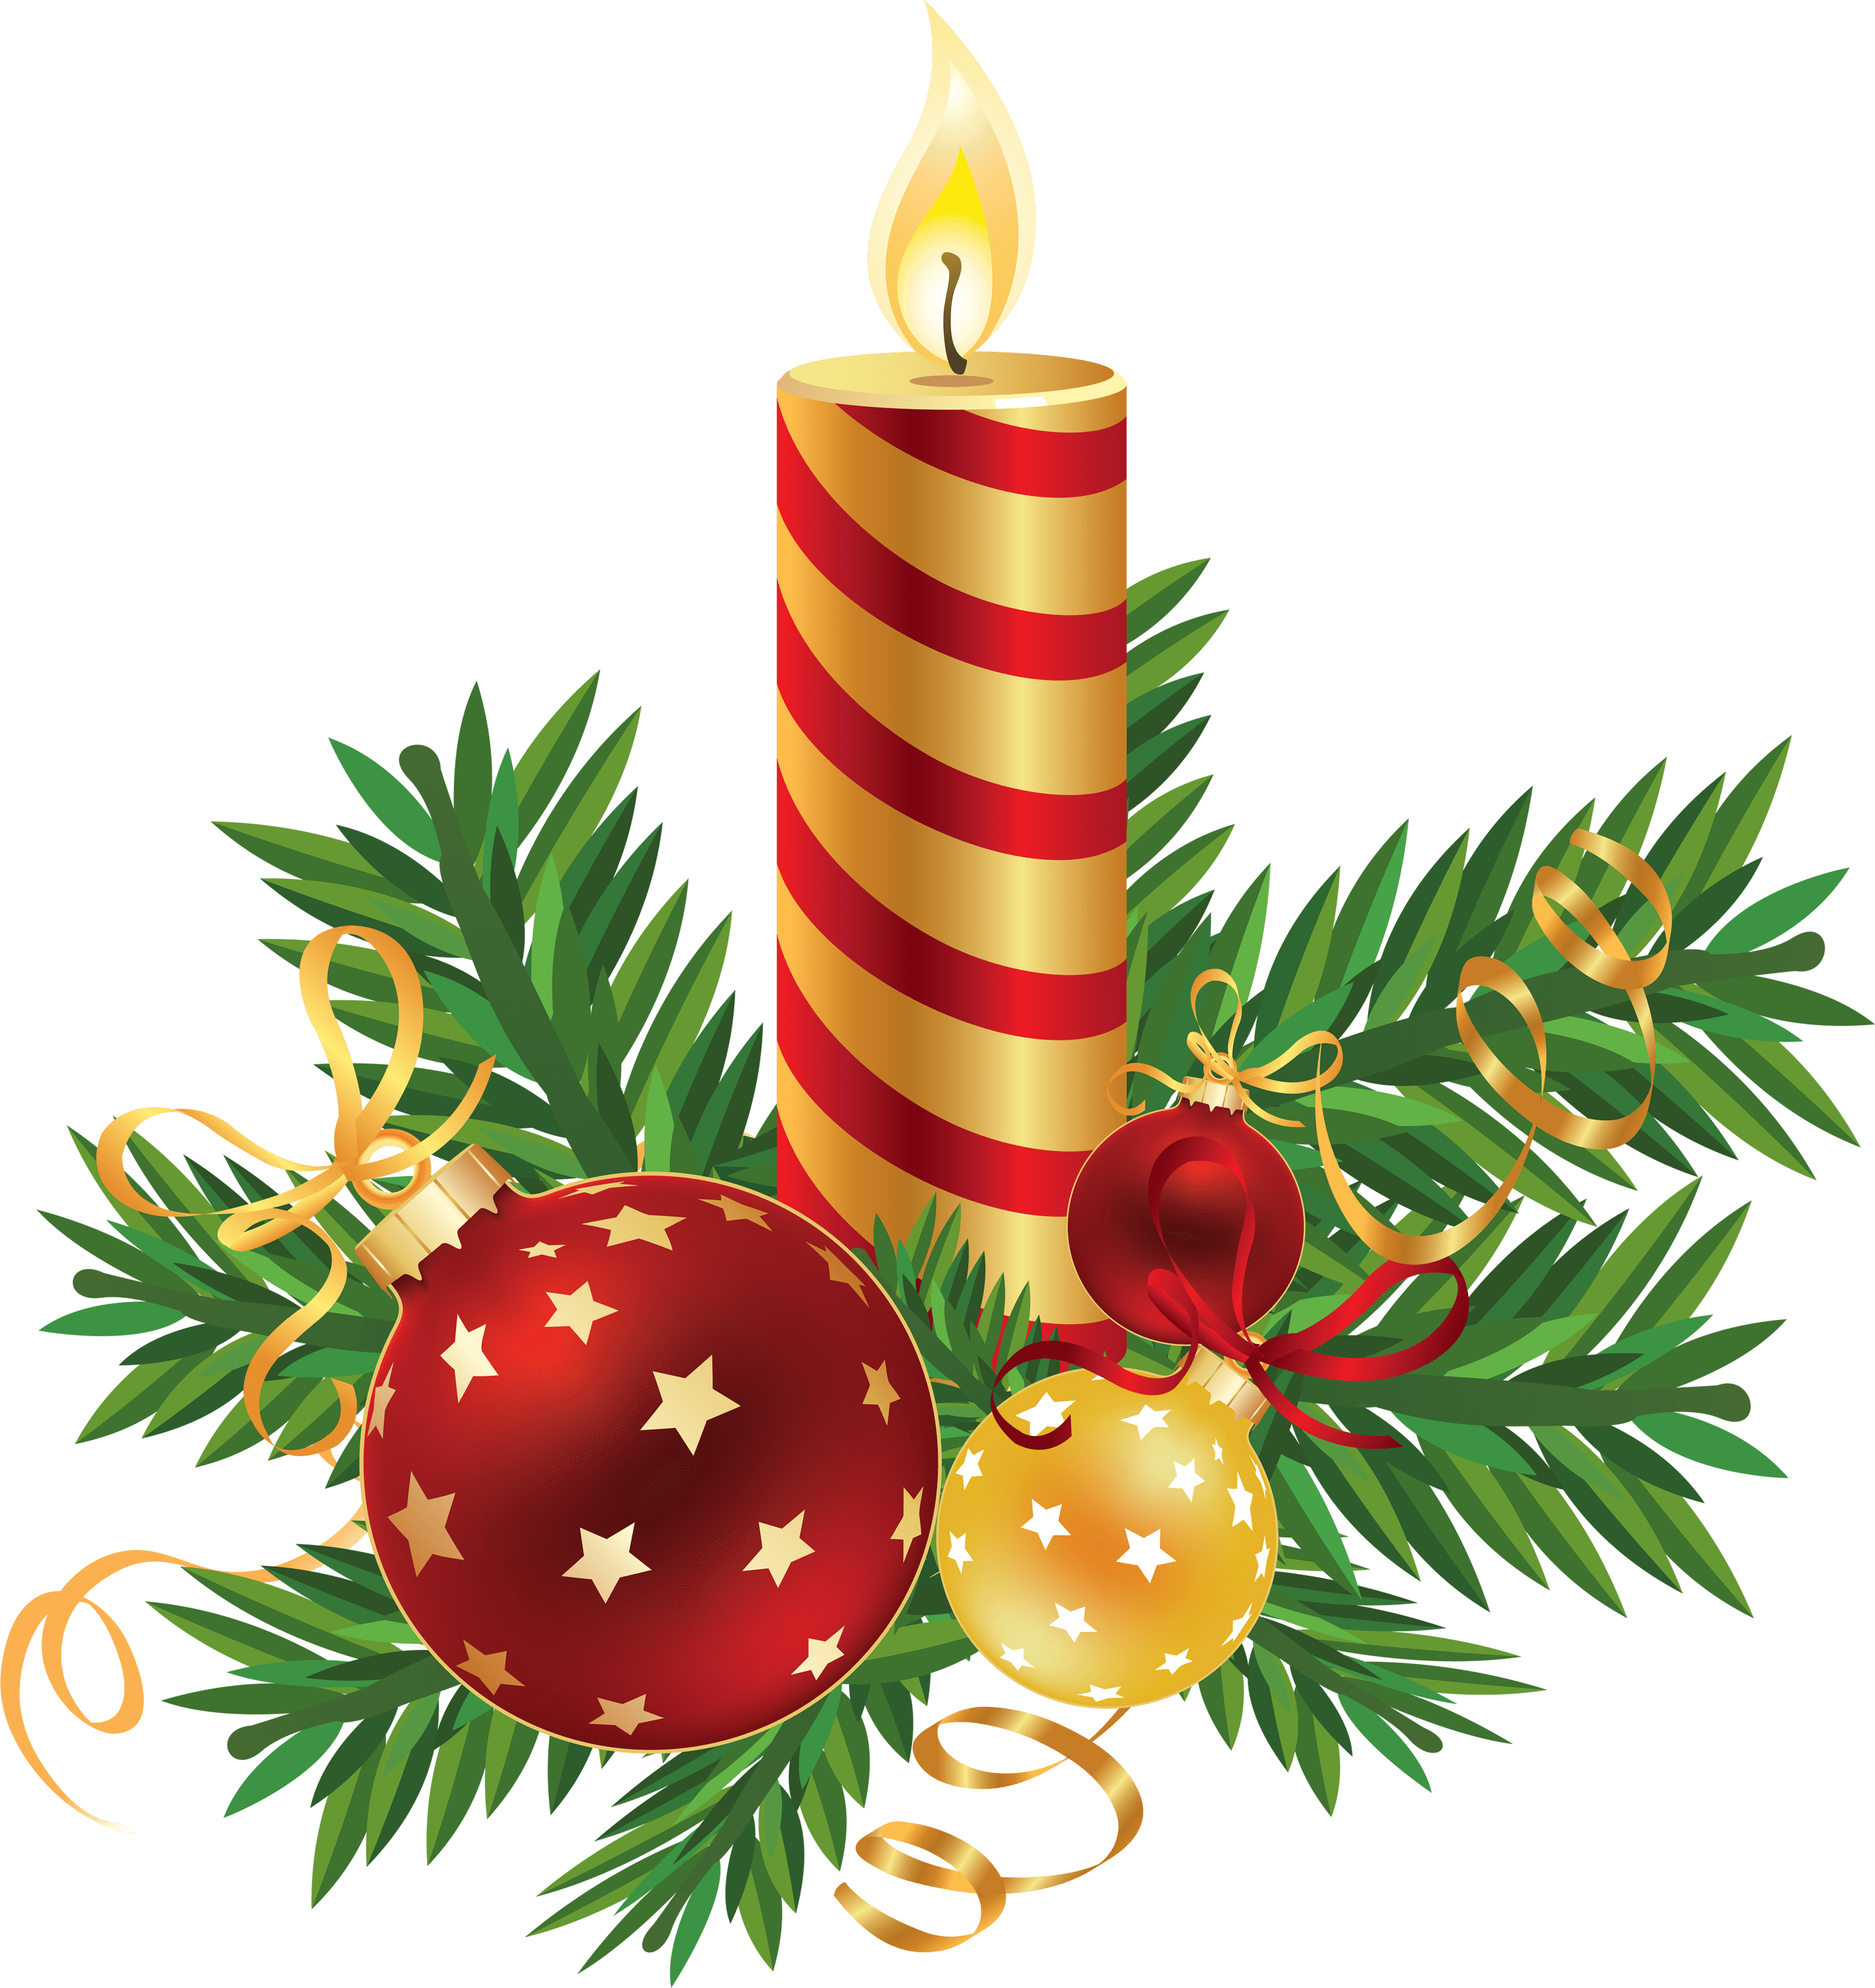 Candles png images. On stand transparent stickpng